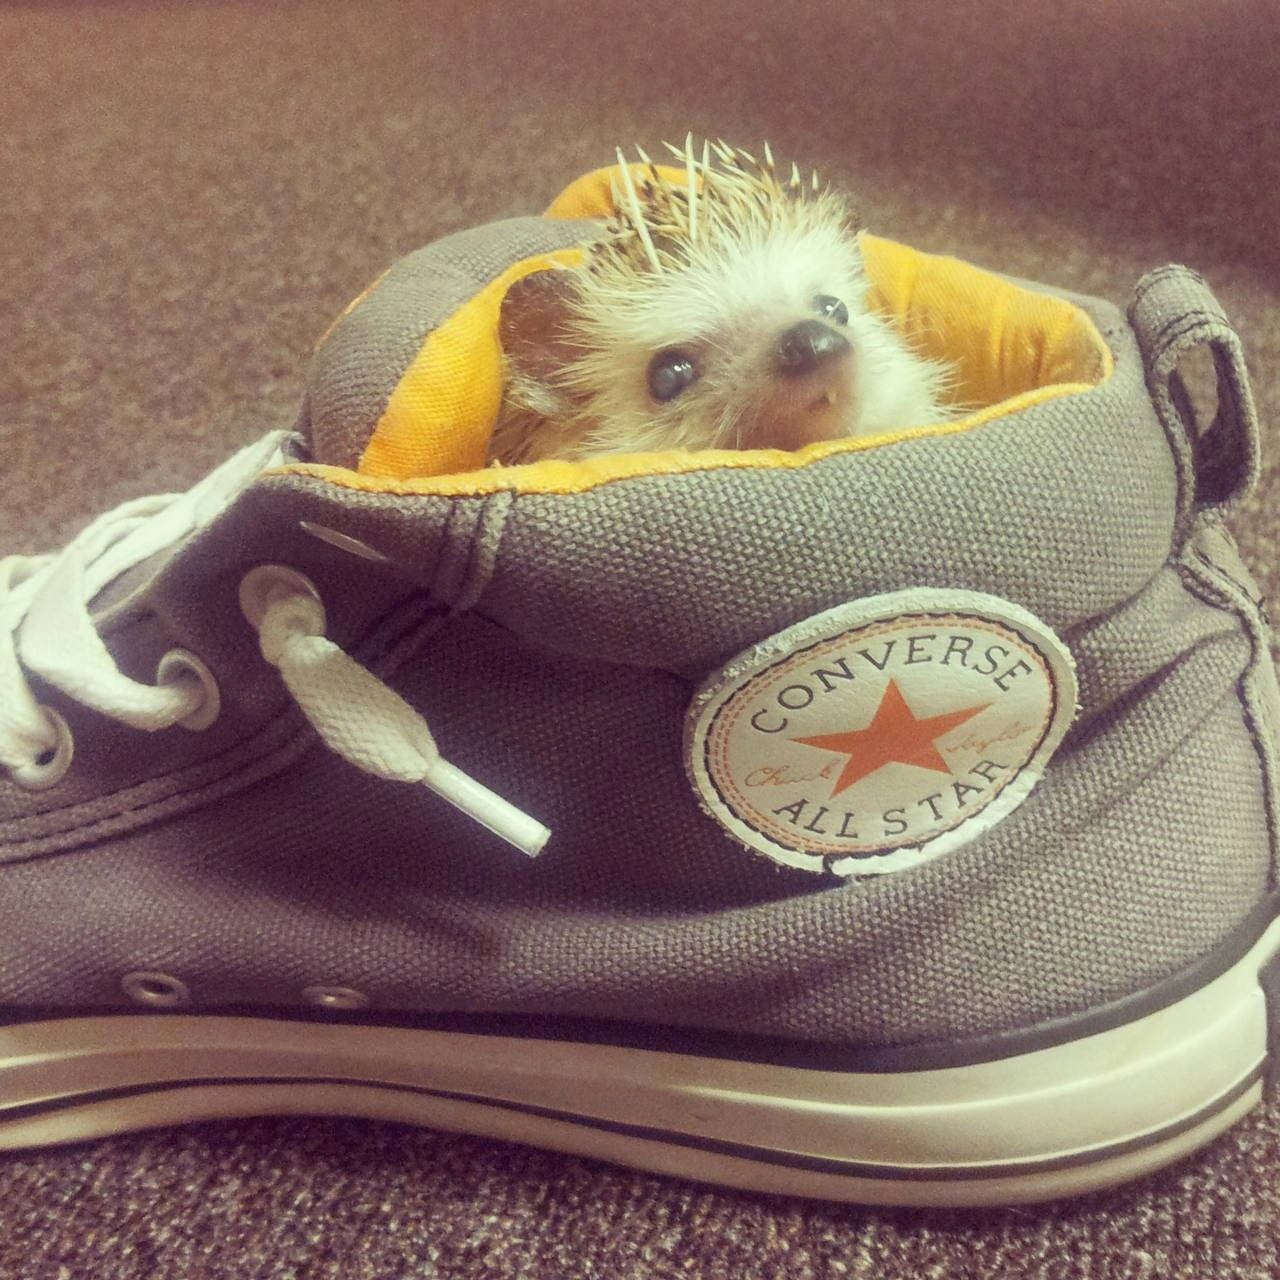 Funny animals of the week - 9 May 2014 (40 pics), cute animals, animal photos, hedgehog sits inside a shoe